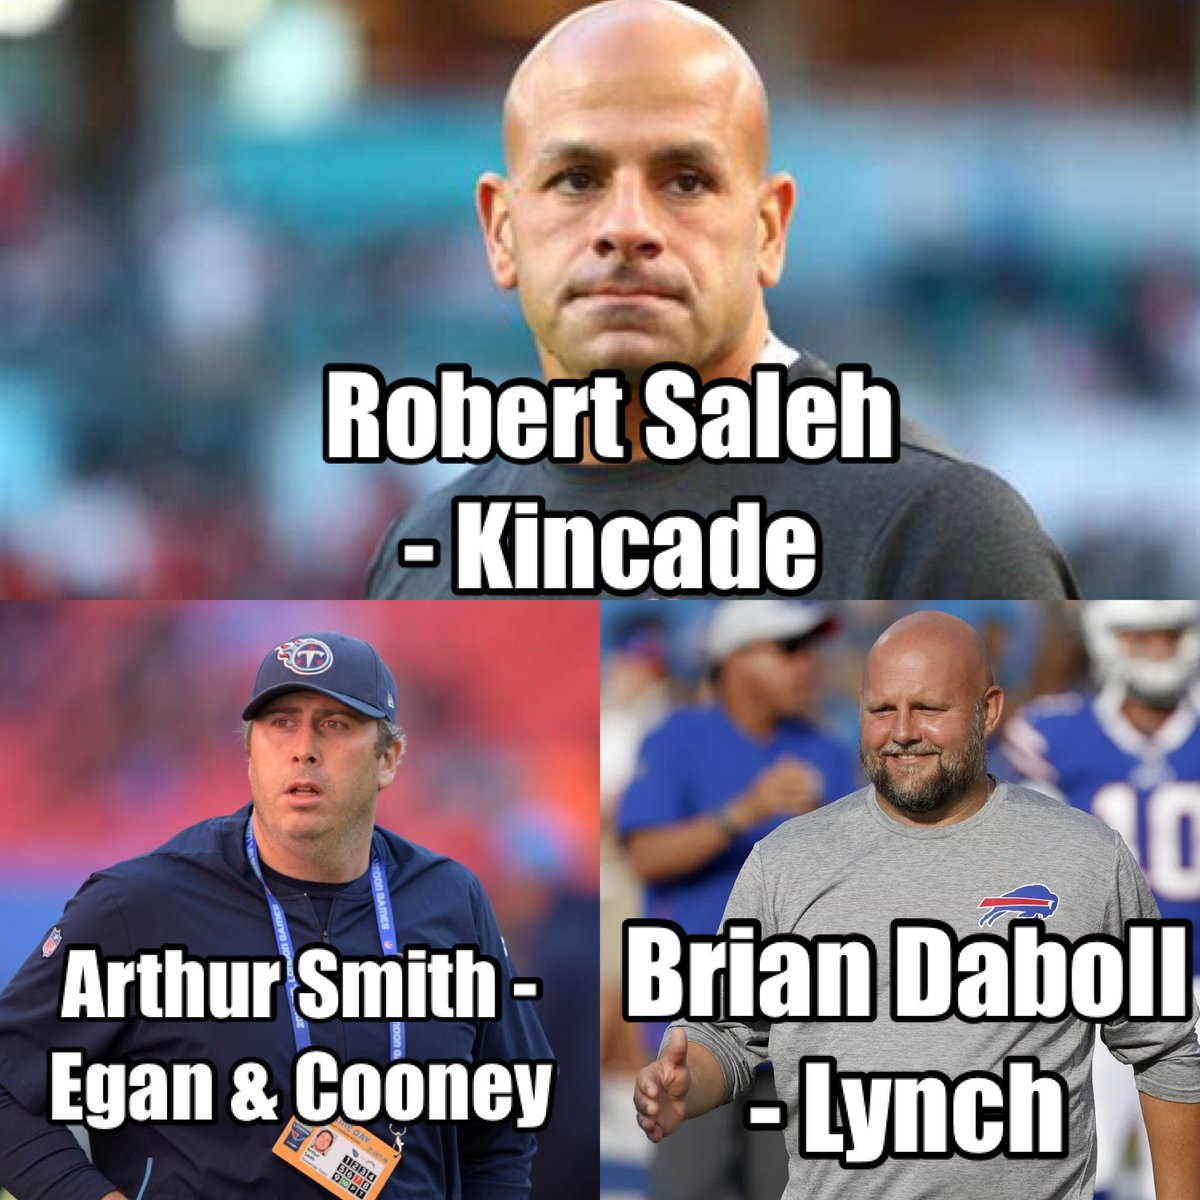 Replying to @975JKShow: Here's our picks for the #Eagles coach. What's yours?